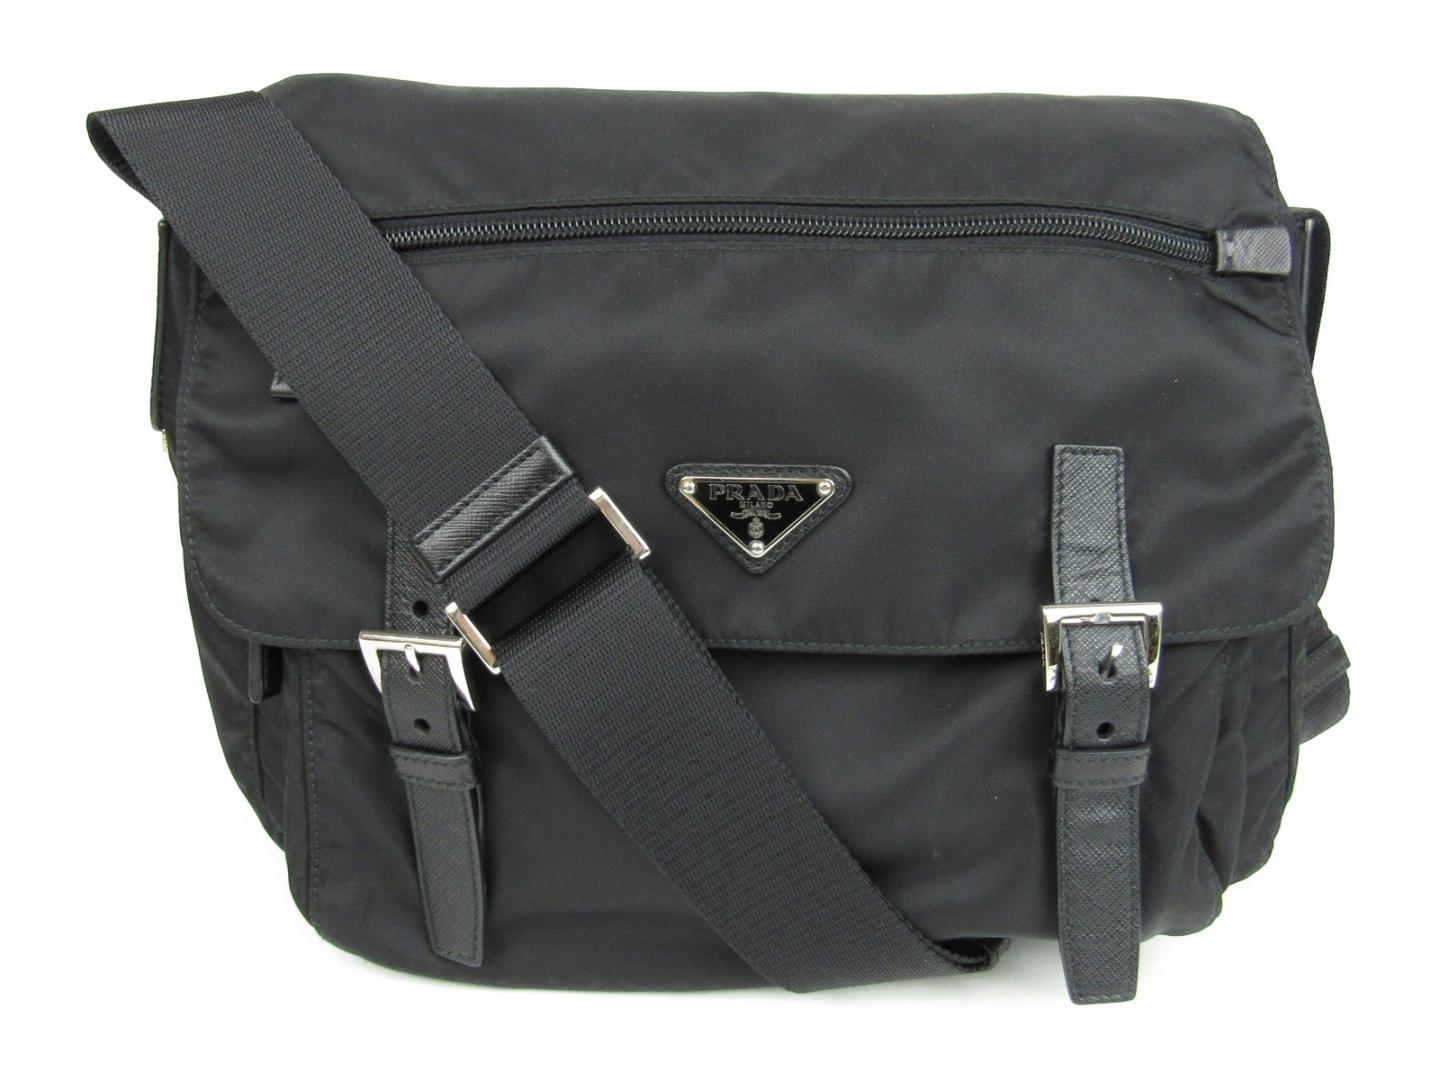 6ed088bb9f BRANDOFF  Authentic PRADA Shoulder Bag nylon Black